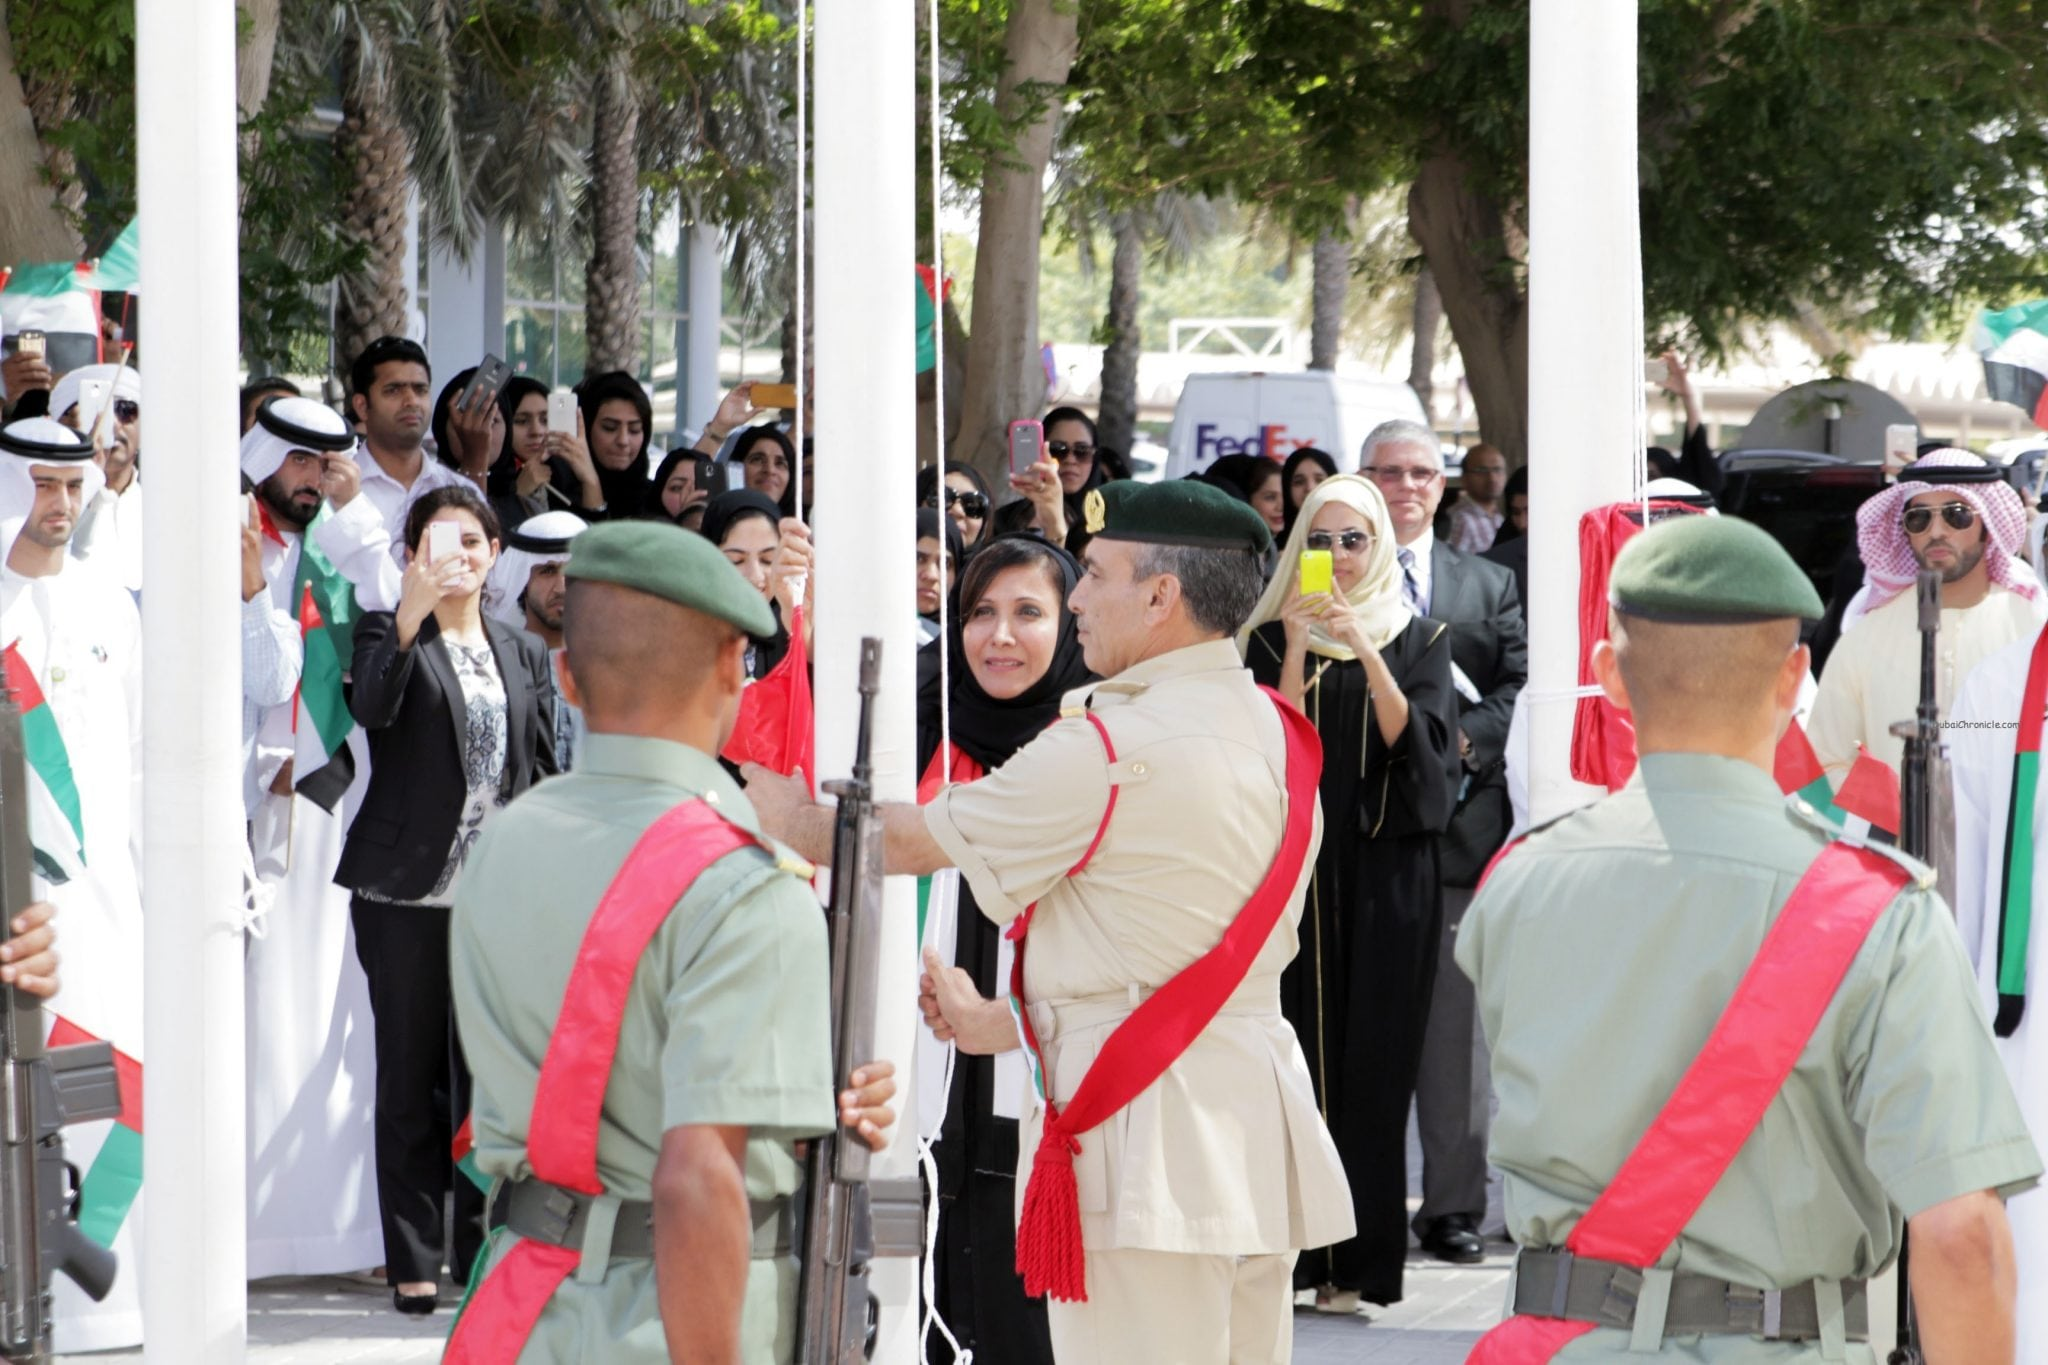 HE Salma Ali Saif Bin Hareb, CEO of Economic Zones World hoisting national flag in -Jafza